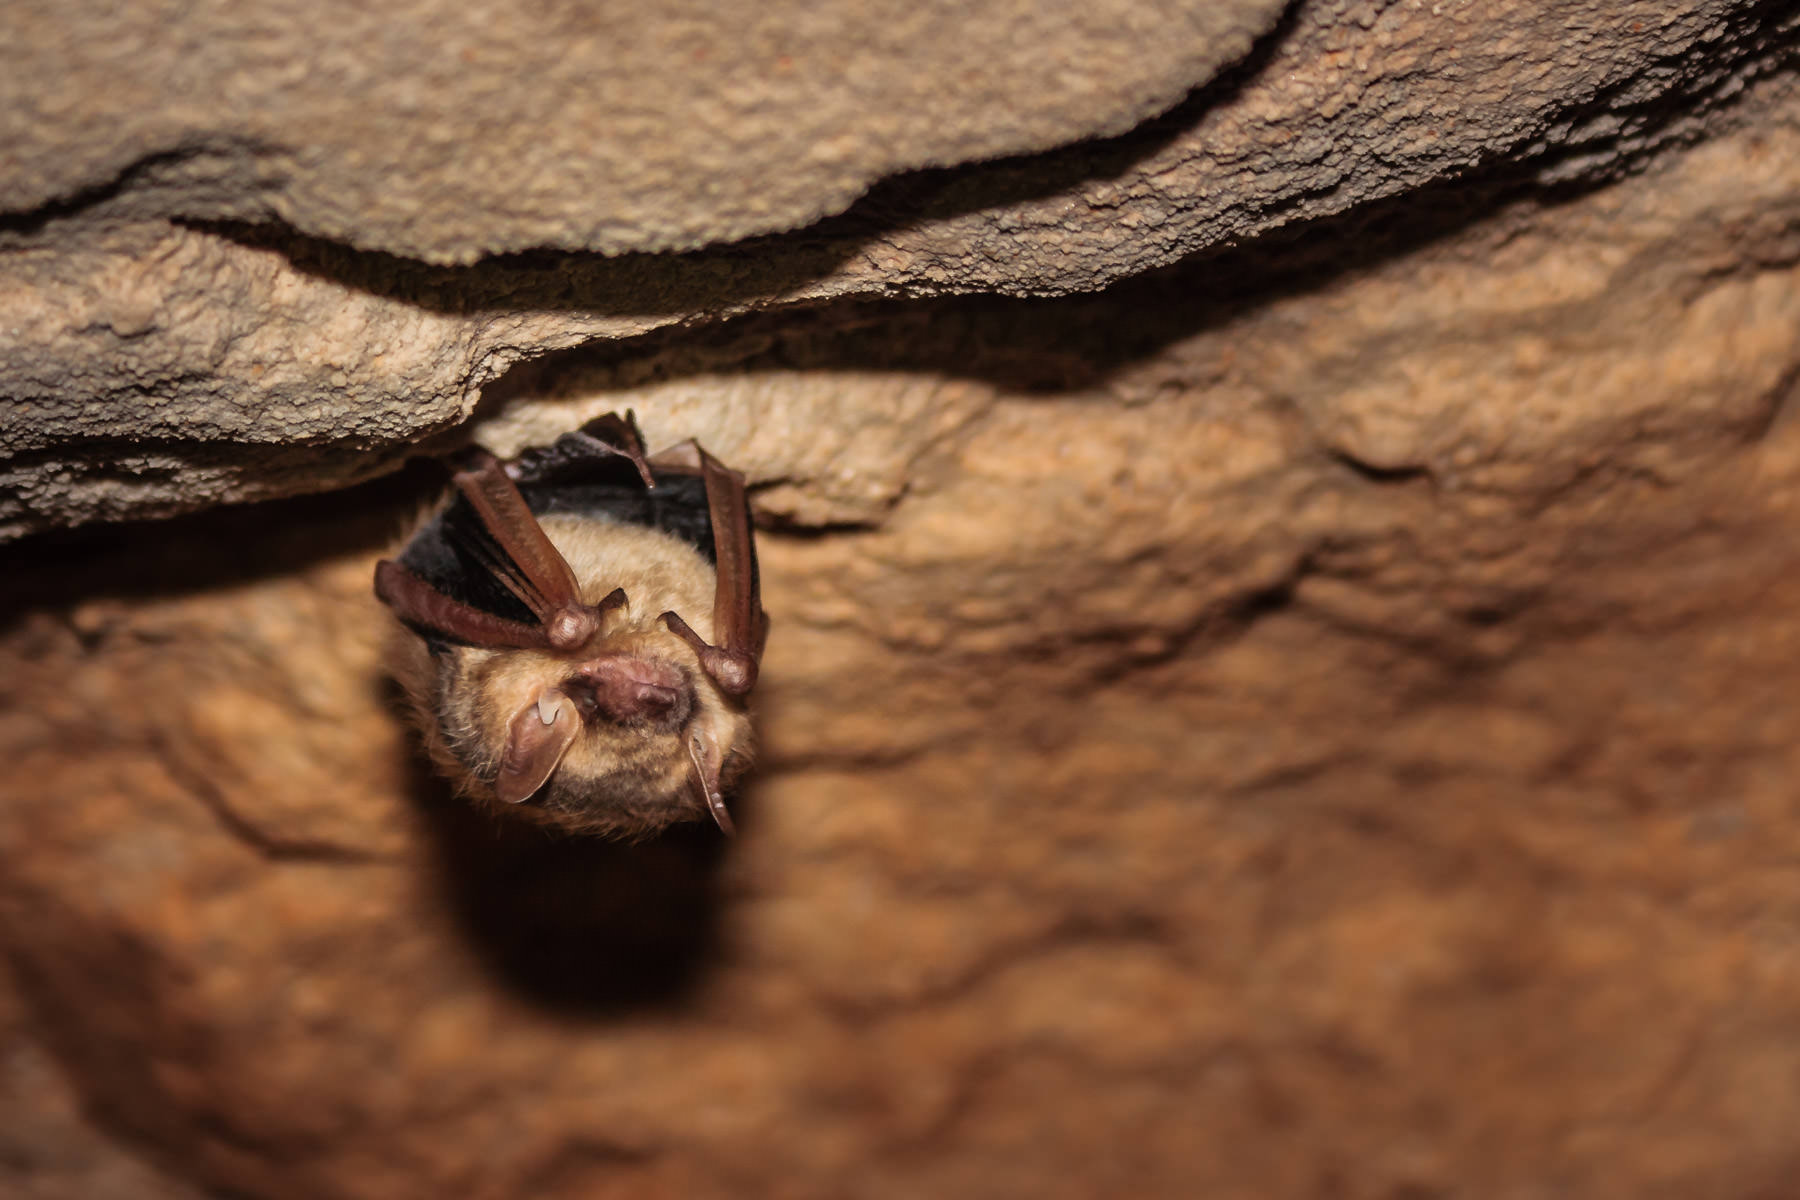 An Eastern Pippistrelle bat sleeping in Inner Space Cavern, Georgetown, Texas. These bats, also known as Butterfly Bats, are the second-smallest species of bat in the United States.